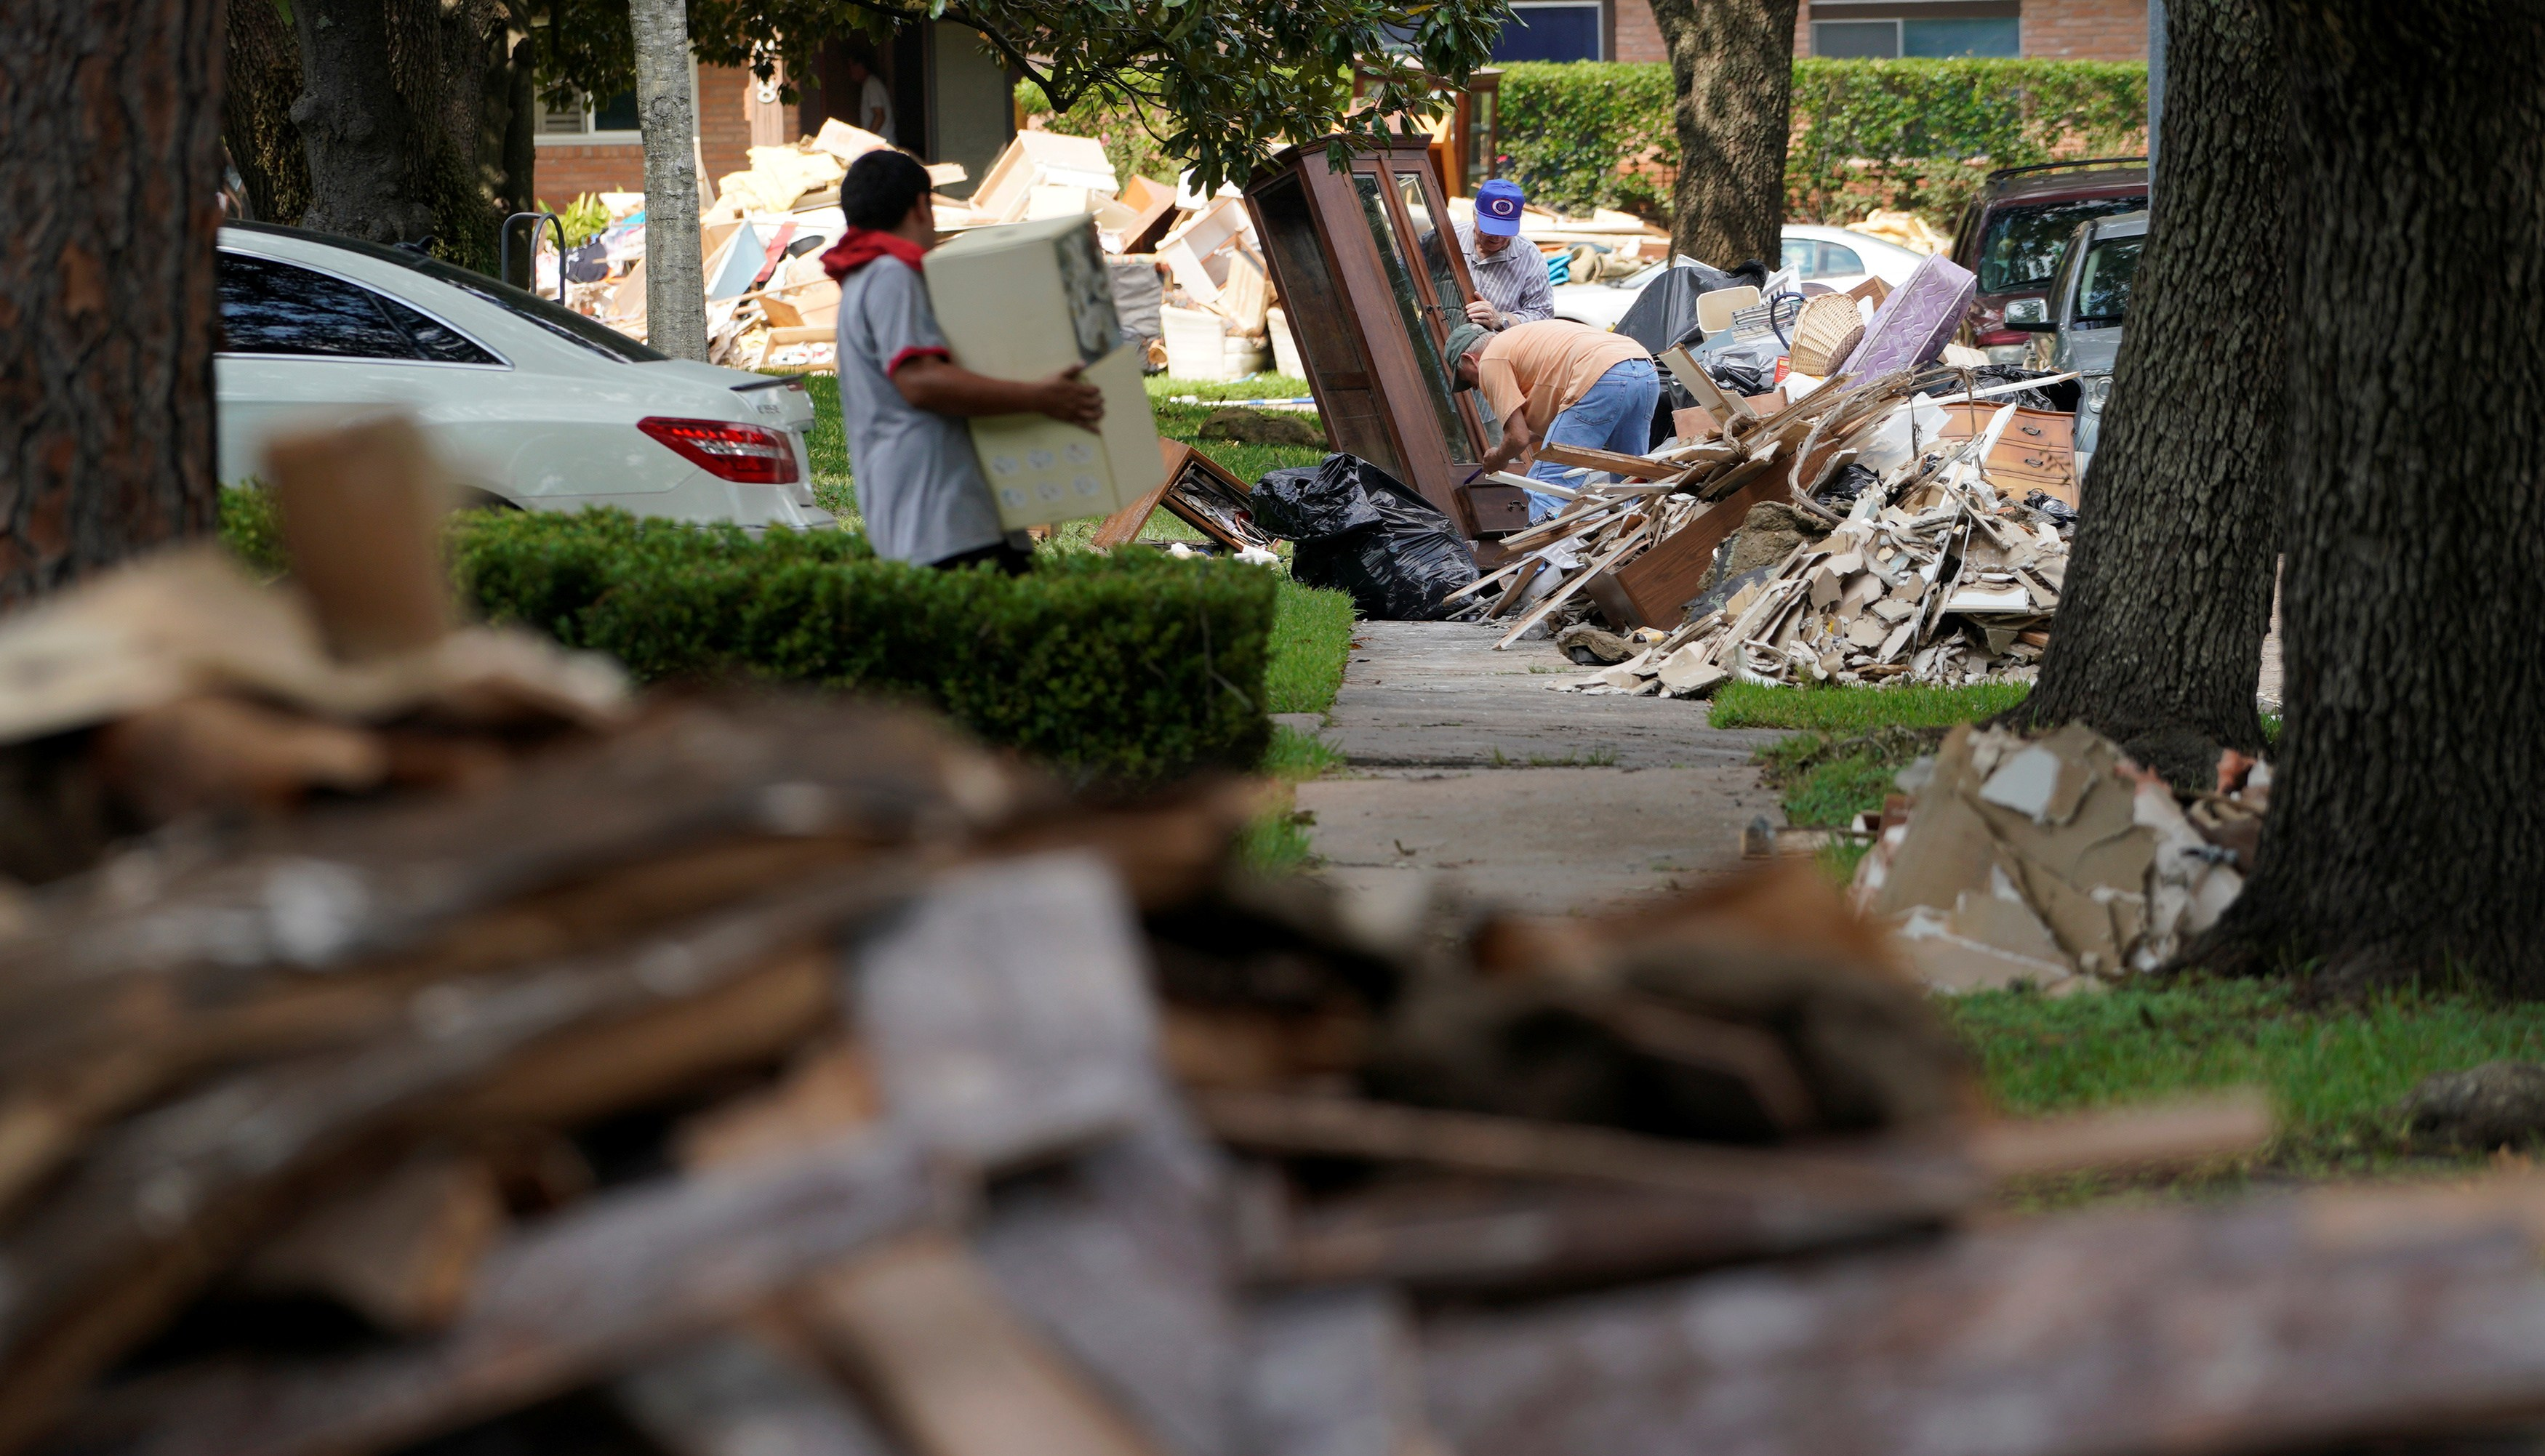 Photo: Giant mounds of trash from Hurricane Harvey flood damaged homes lines the sidewalks in Houston